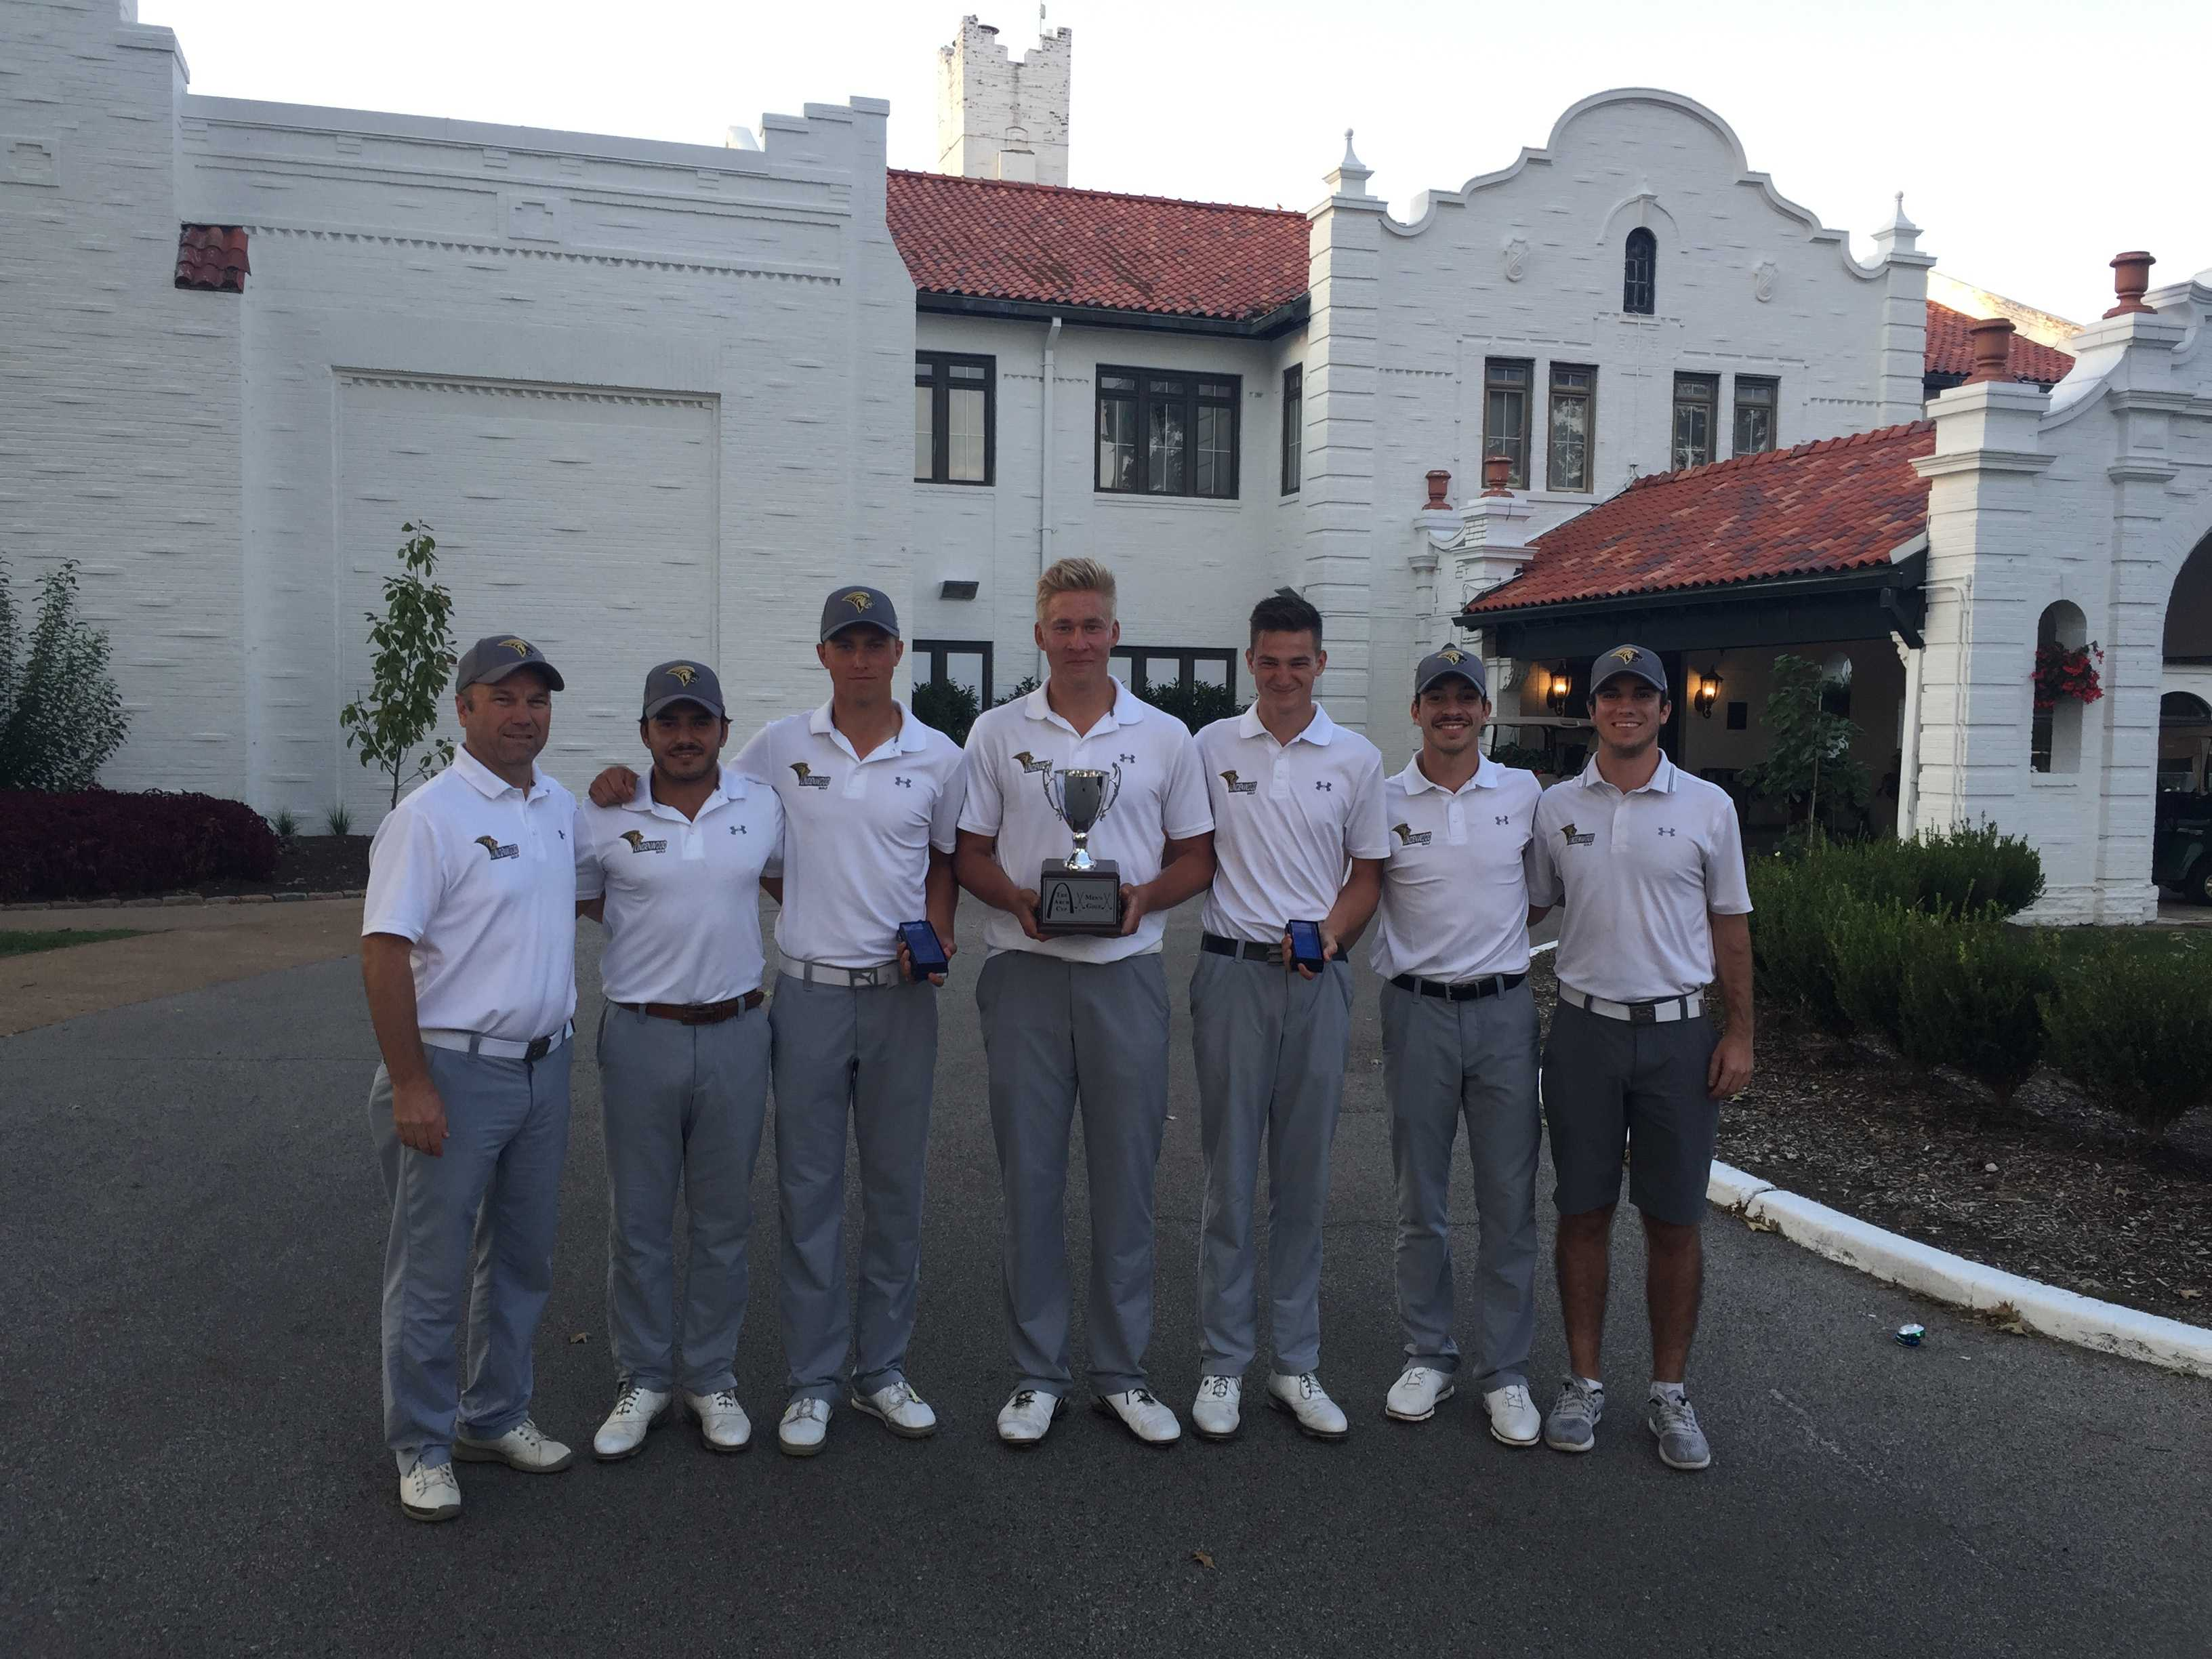 Lindenwood Men's Golf Team after winning The Arch Cup on Sept. 5.  Photo by Don Adams Jr.